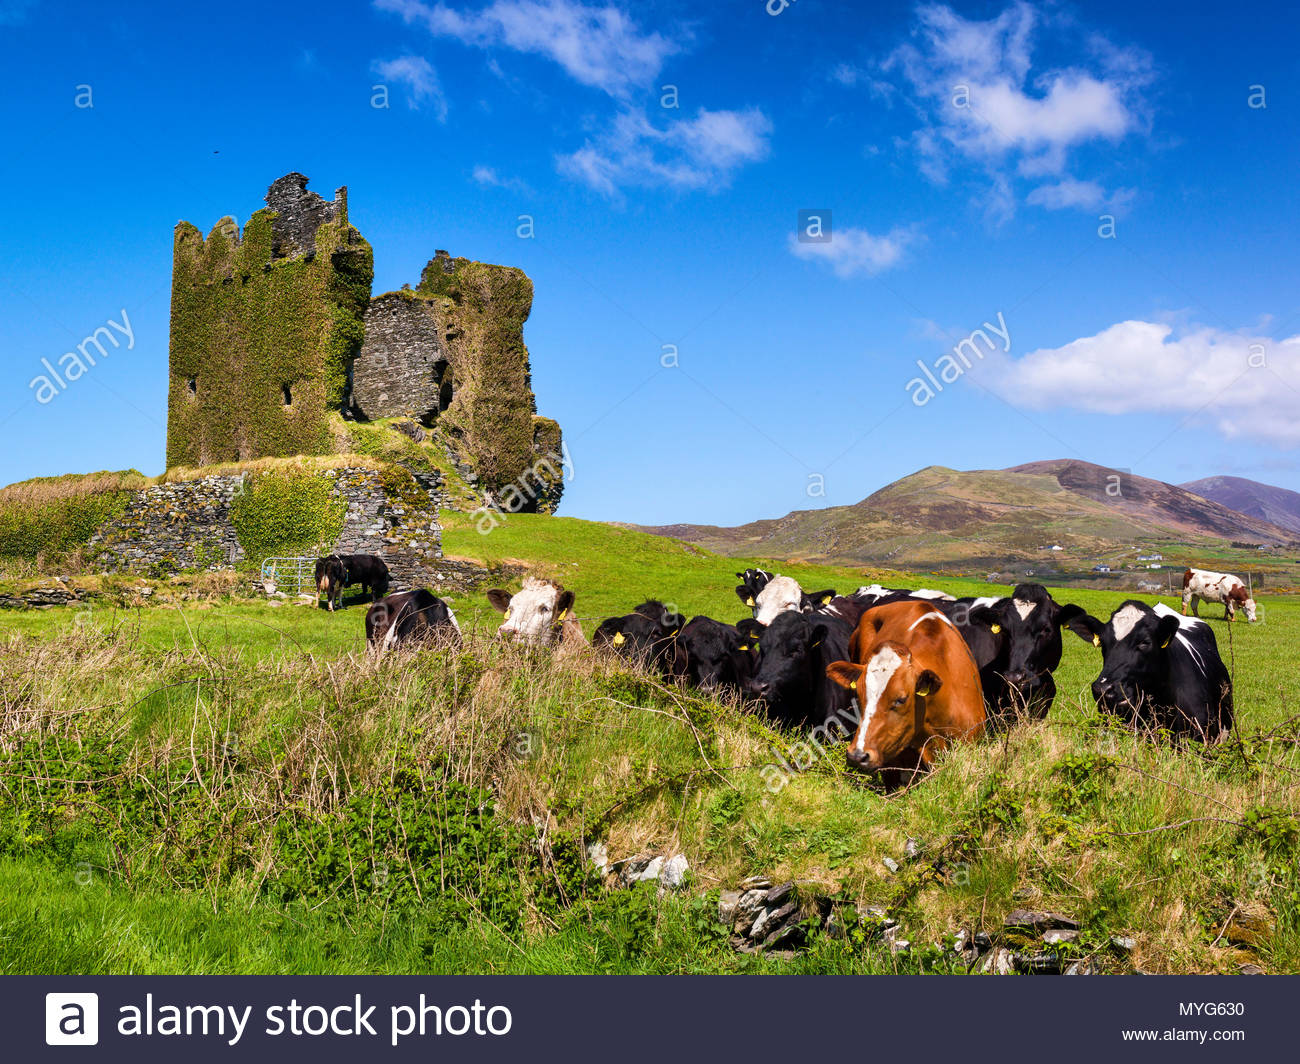 Cows gaze over a wall at Balycarbery castle in Kerry. - Stock Image